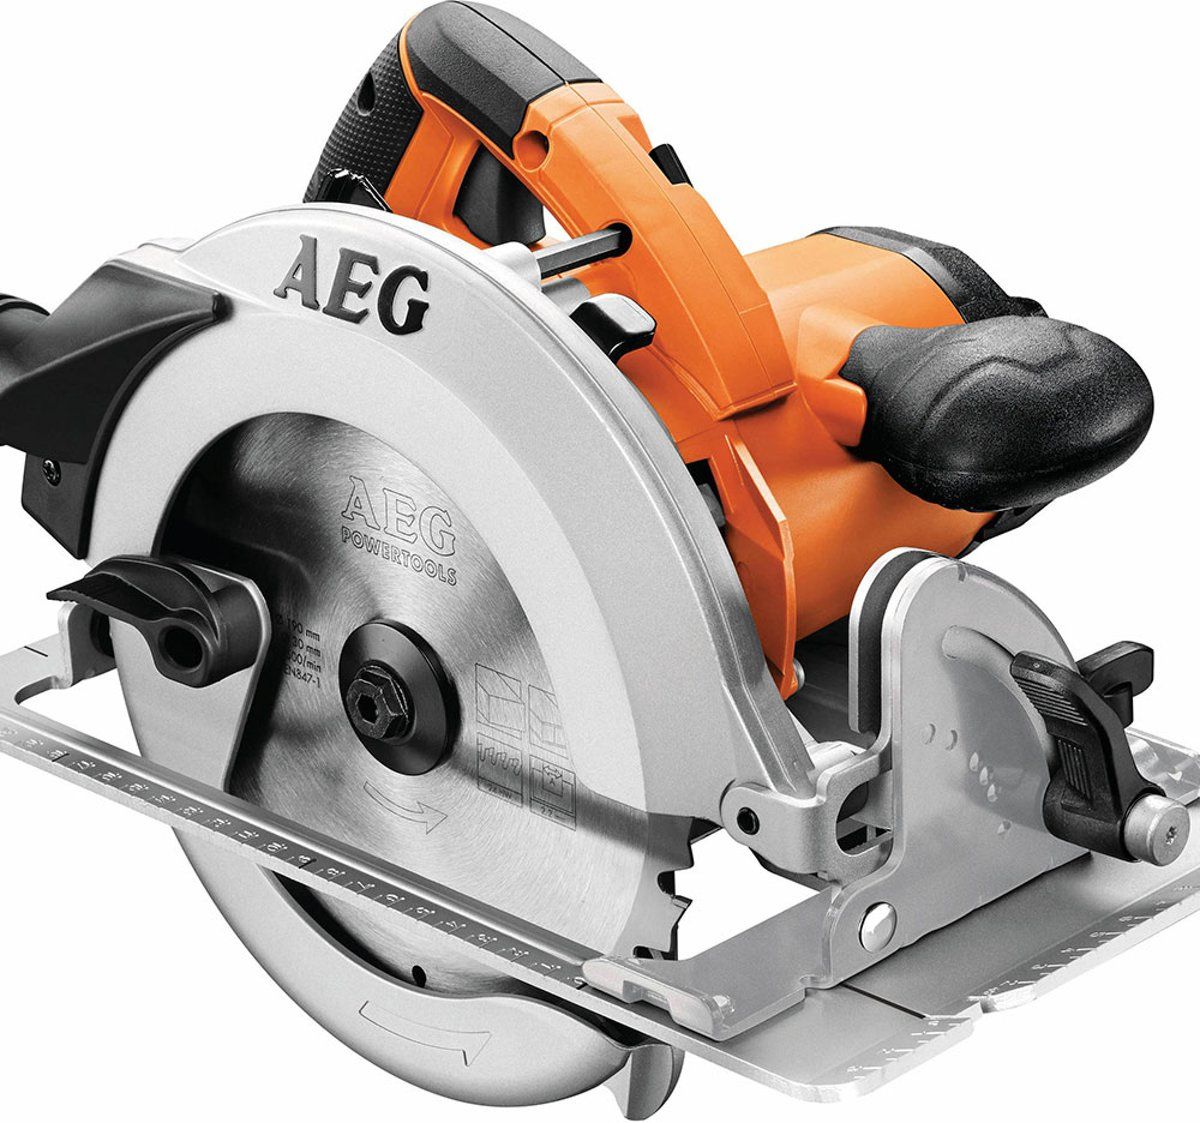 AEG Powertools Heavy duty KS66-2 Cirkelzaagmachine | Cirkelzaag 1600W